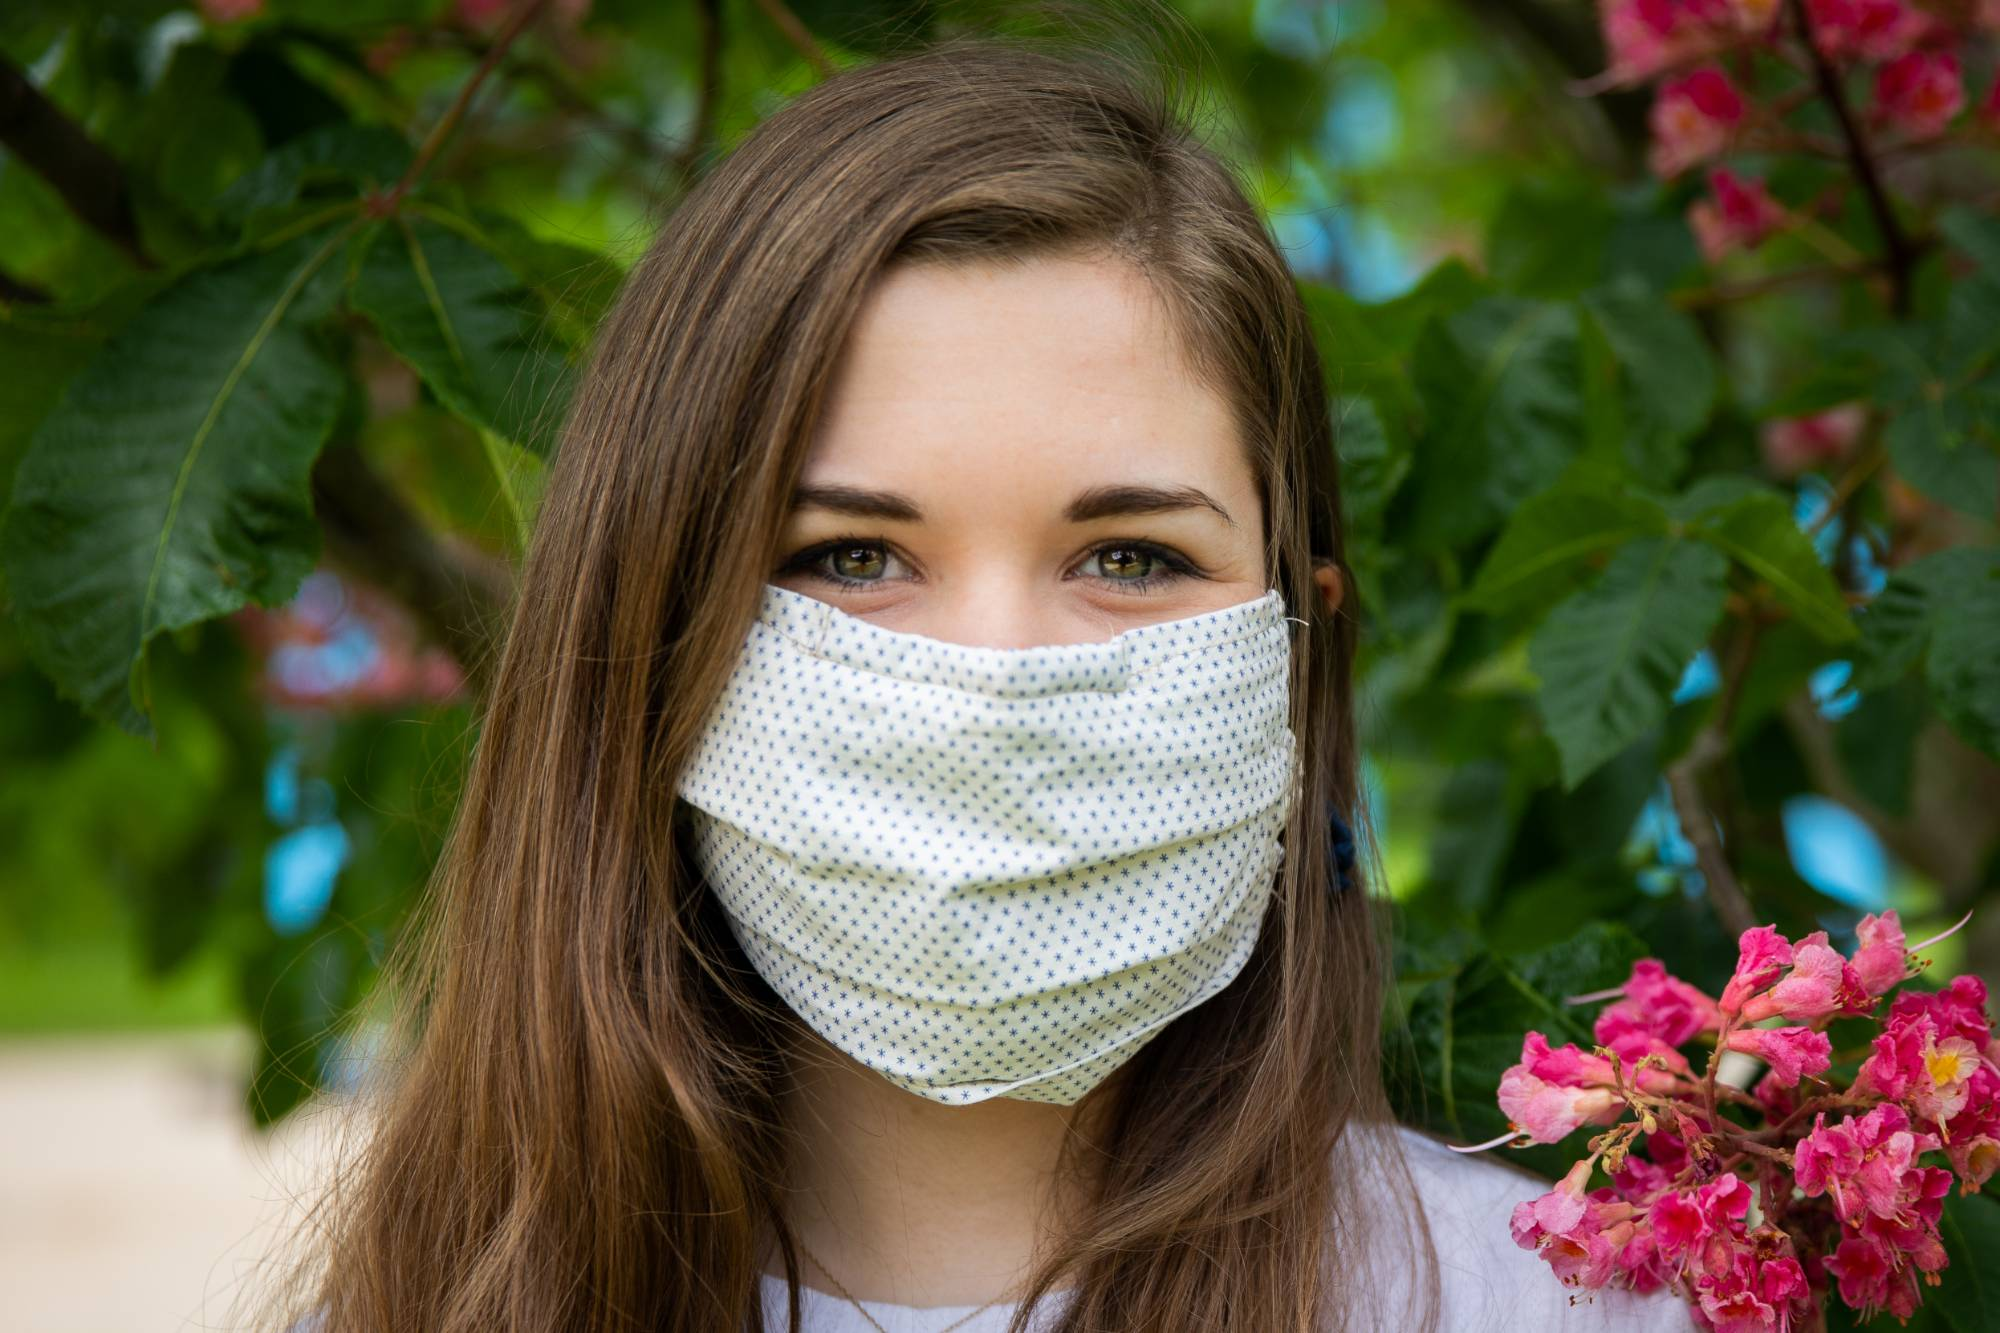 A current student stands near a plant wearing a face covering.